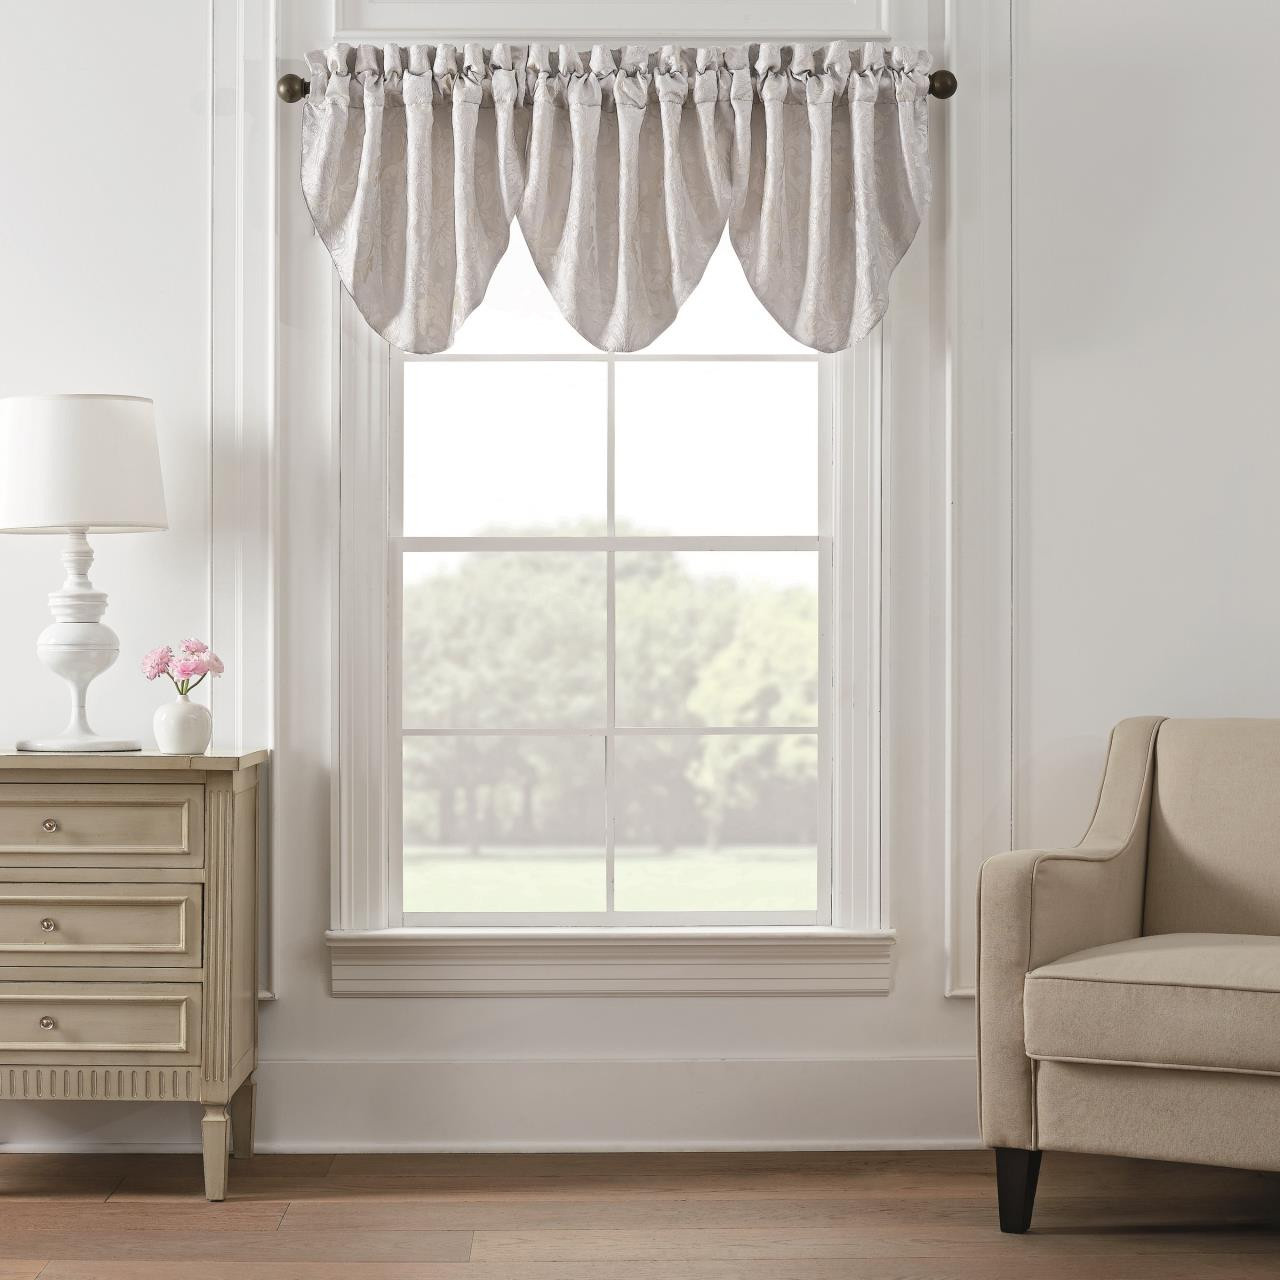 Belline Cascade Valance Set Of 3 By Waterford Paul S Home Fashions